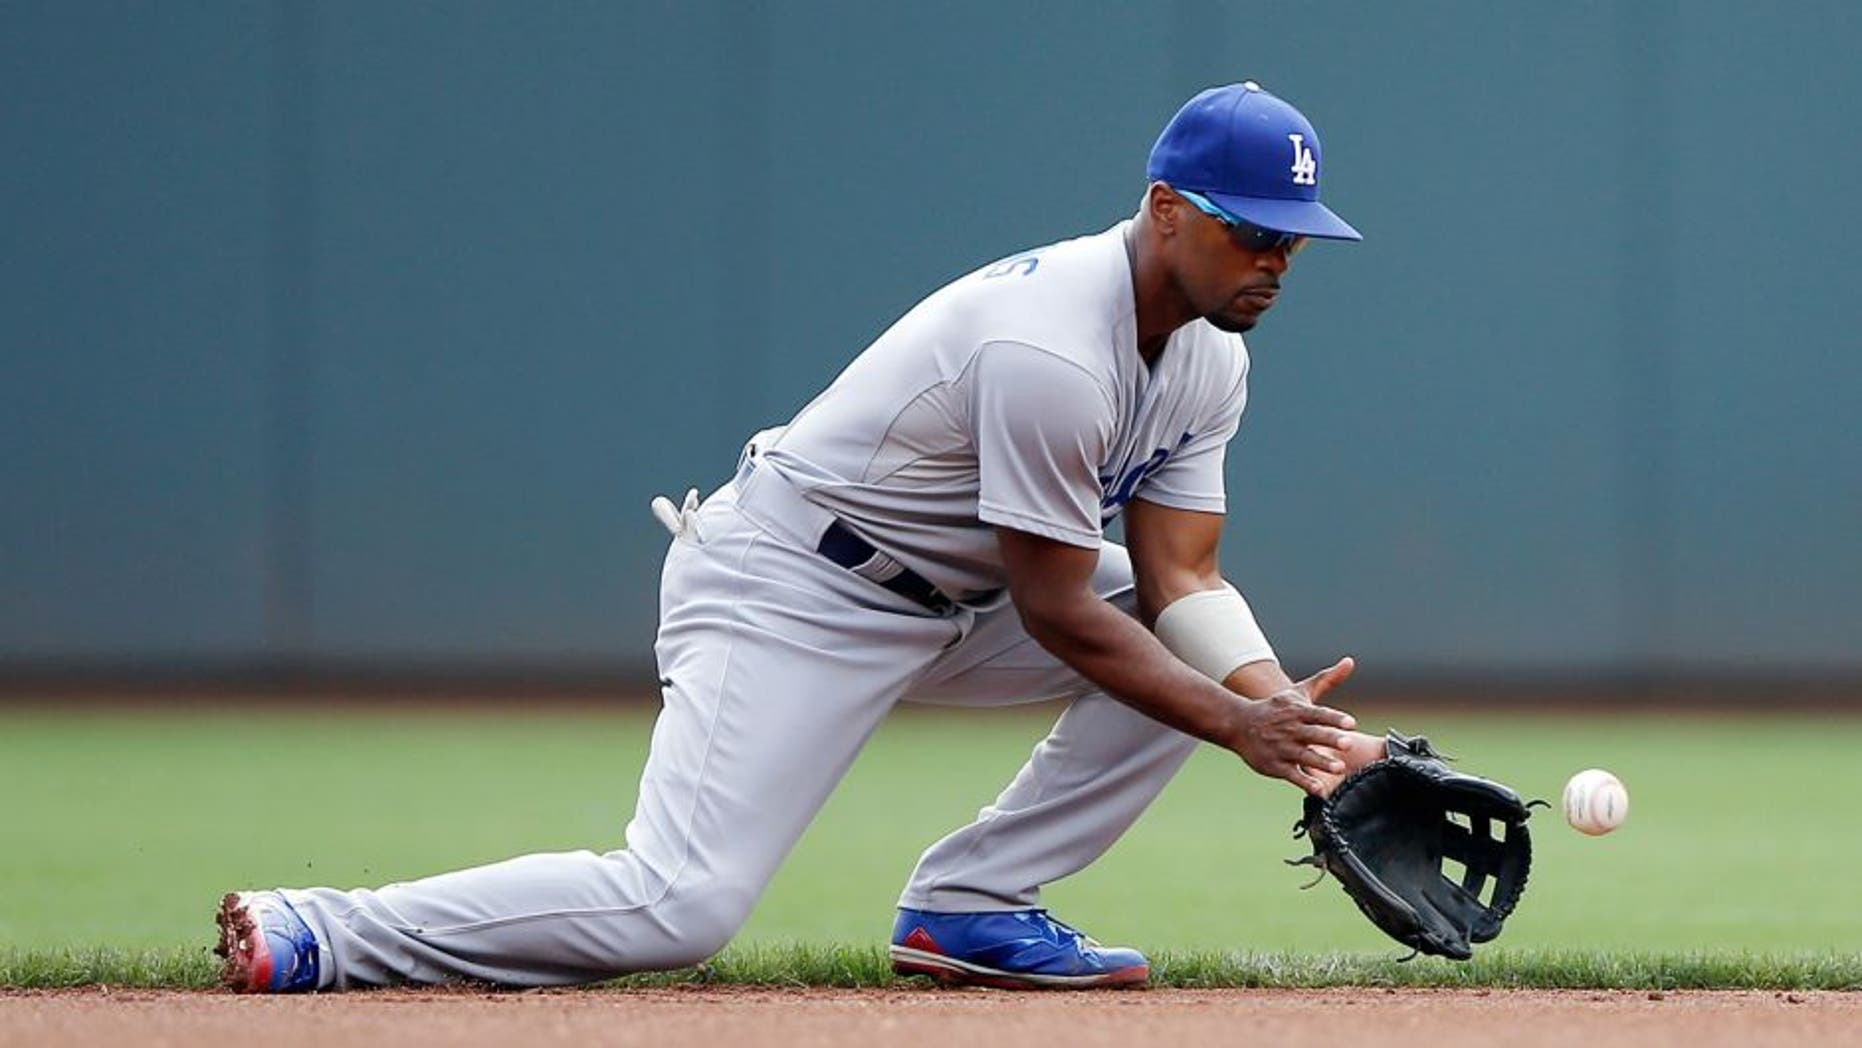 CINCINNATI, OH - AUGUST 27: Jimmy Rollins #11 of the Los Angeles Dodgers fields a ground ball against the Cincinnati Reds during a game at Great American Ball Park on August 27, 2015 in Cincinnati, Ohio. The Dodgers defeated the Reds 1-0. (Photo by Joe Robbins/Getty Images)